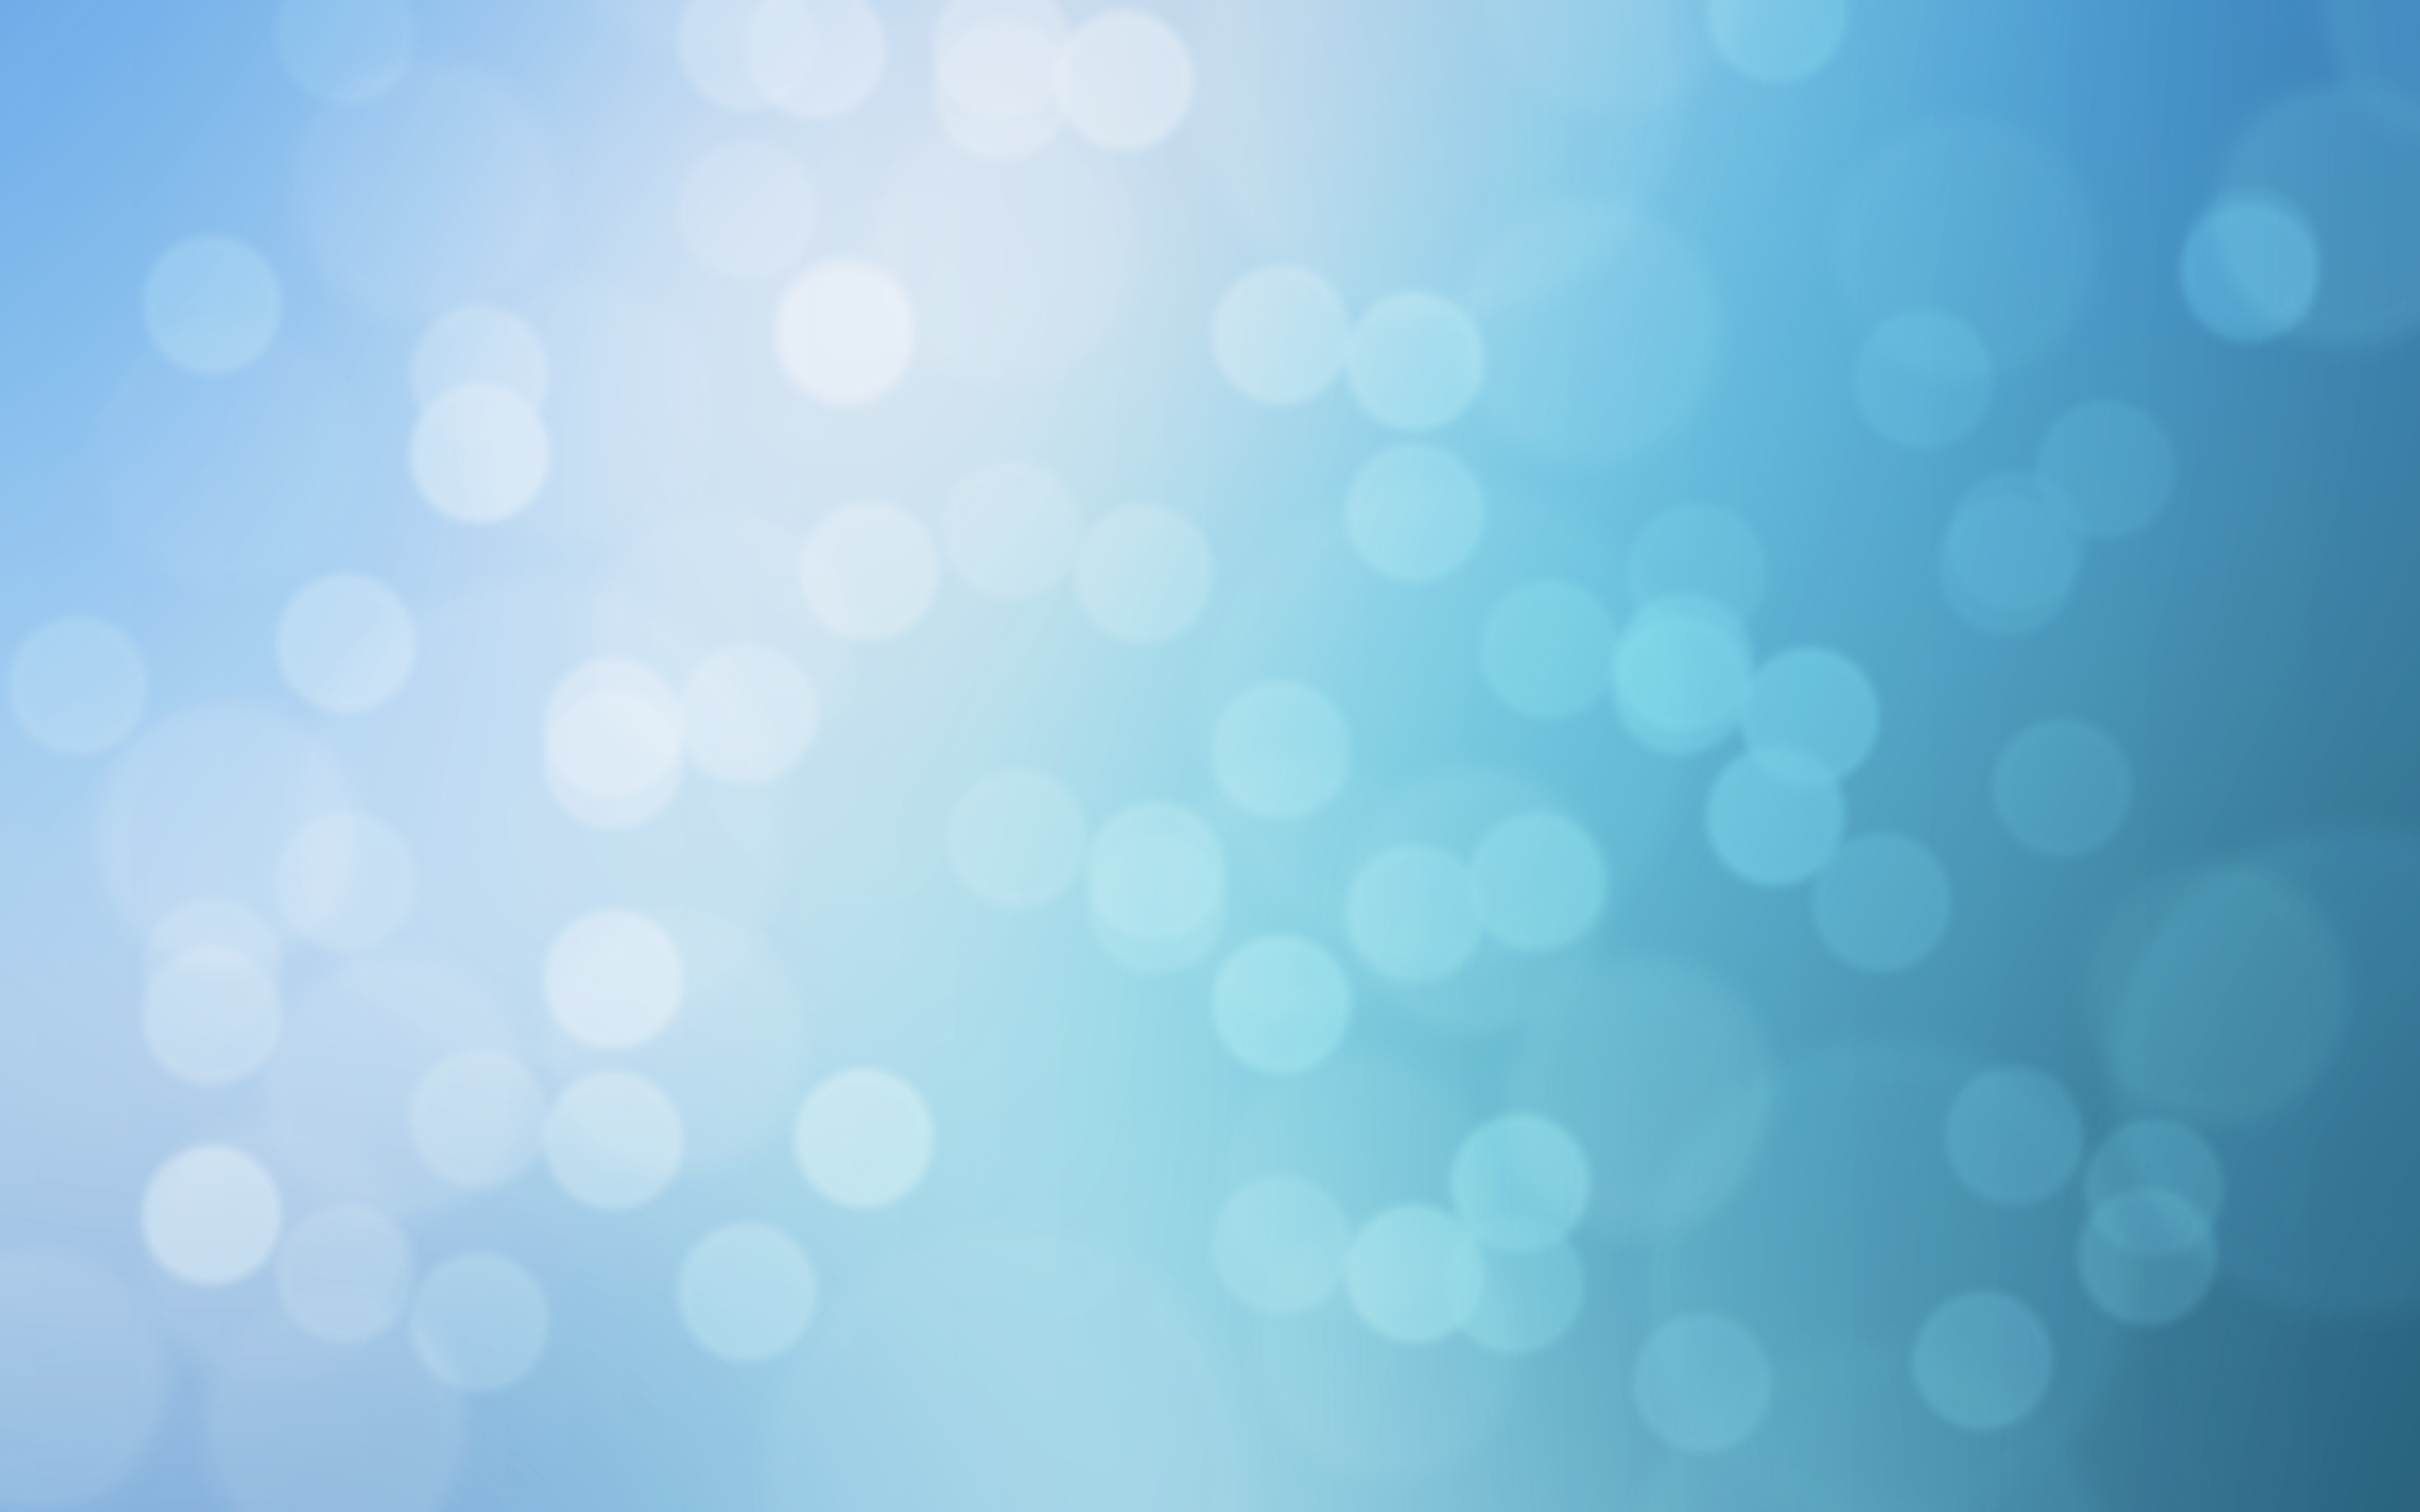 Wallpaper Abstract Abstraction Texture Texture Background Bokeh Blue 2560x1600